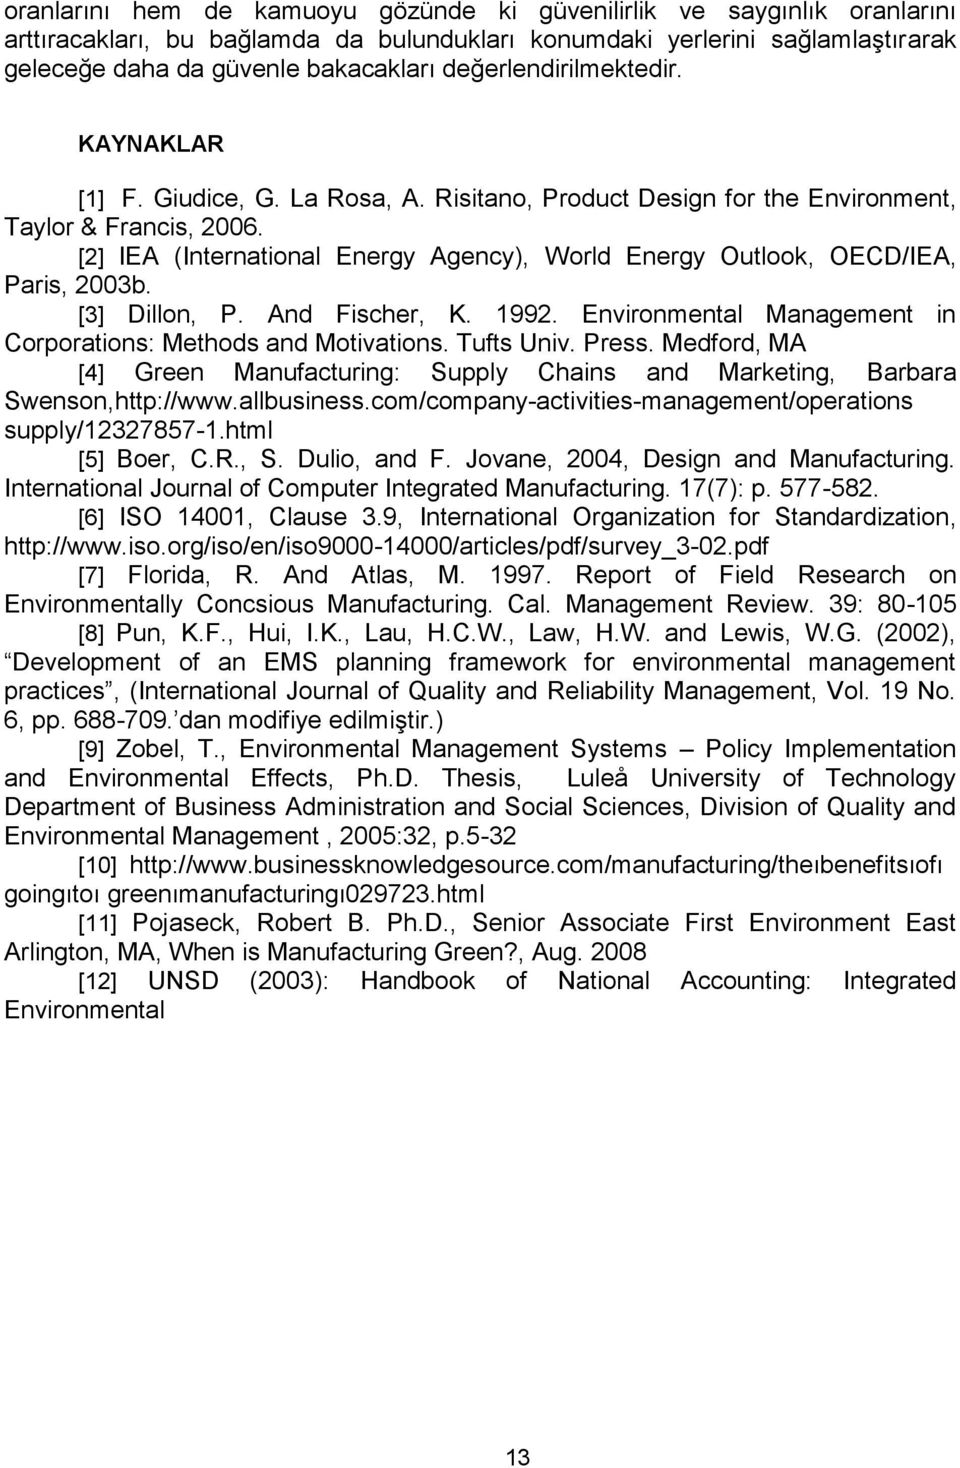 [2] IEA (International Energy Agency), World Energy Outlook, OECD/IEA, Paris, 2003b. [3] Dillon, P. And Fischer, K. 1992. Environmental Management in Corporations: Methods and Motivations. Tufts Univ.